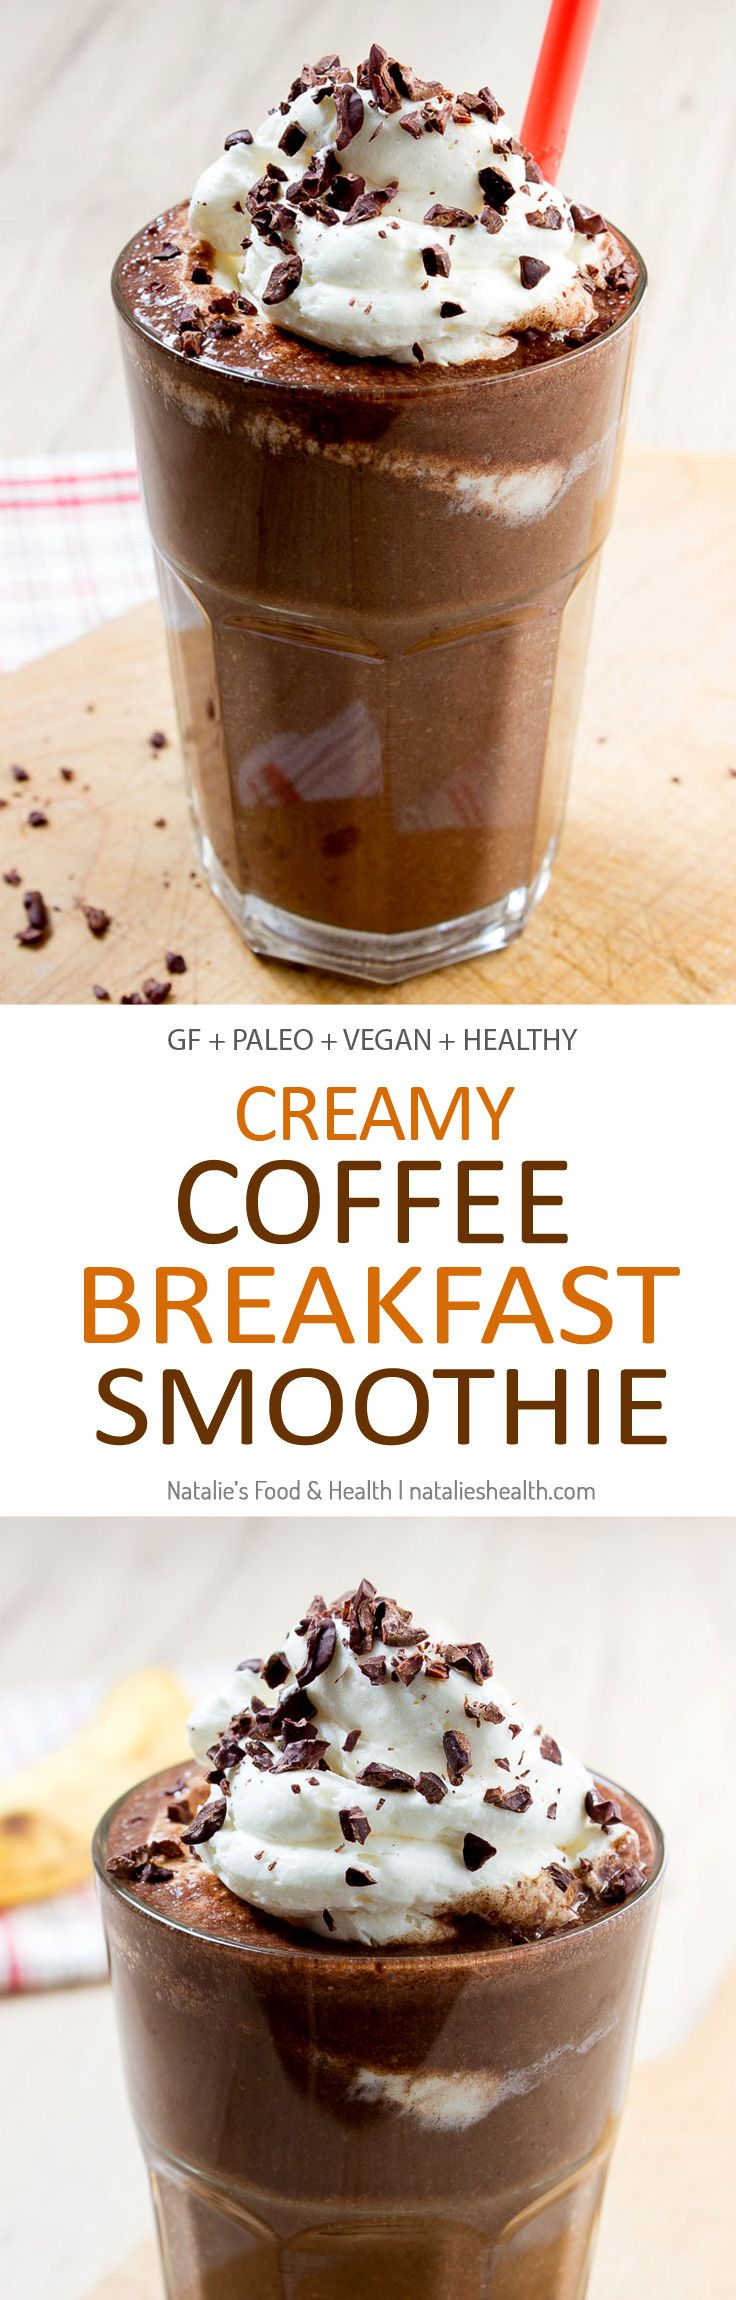 Creamy and energizing Coffee Breakfast Smoothie full of dark chocolate and coffee flavors. This smoothie is full of nutrients. Perfect meal to start the day!